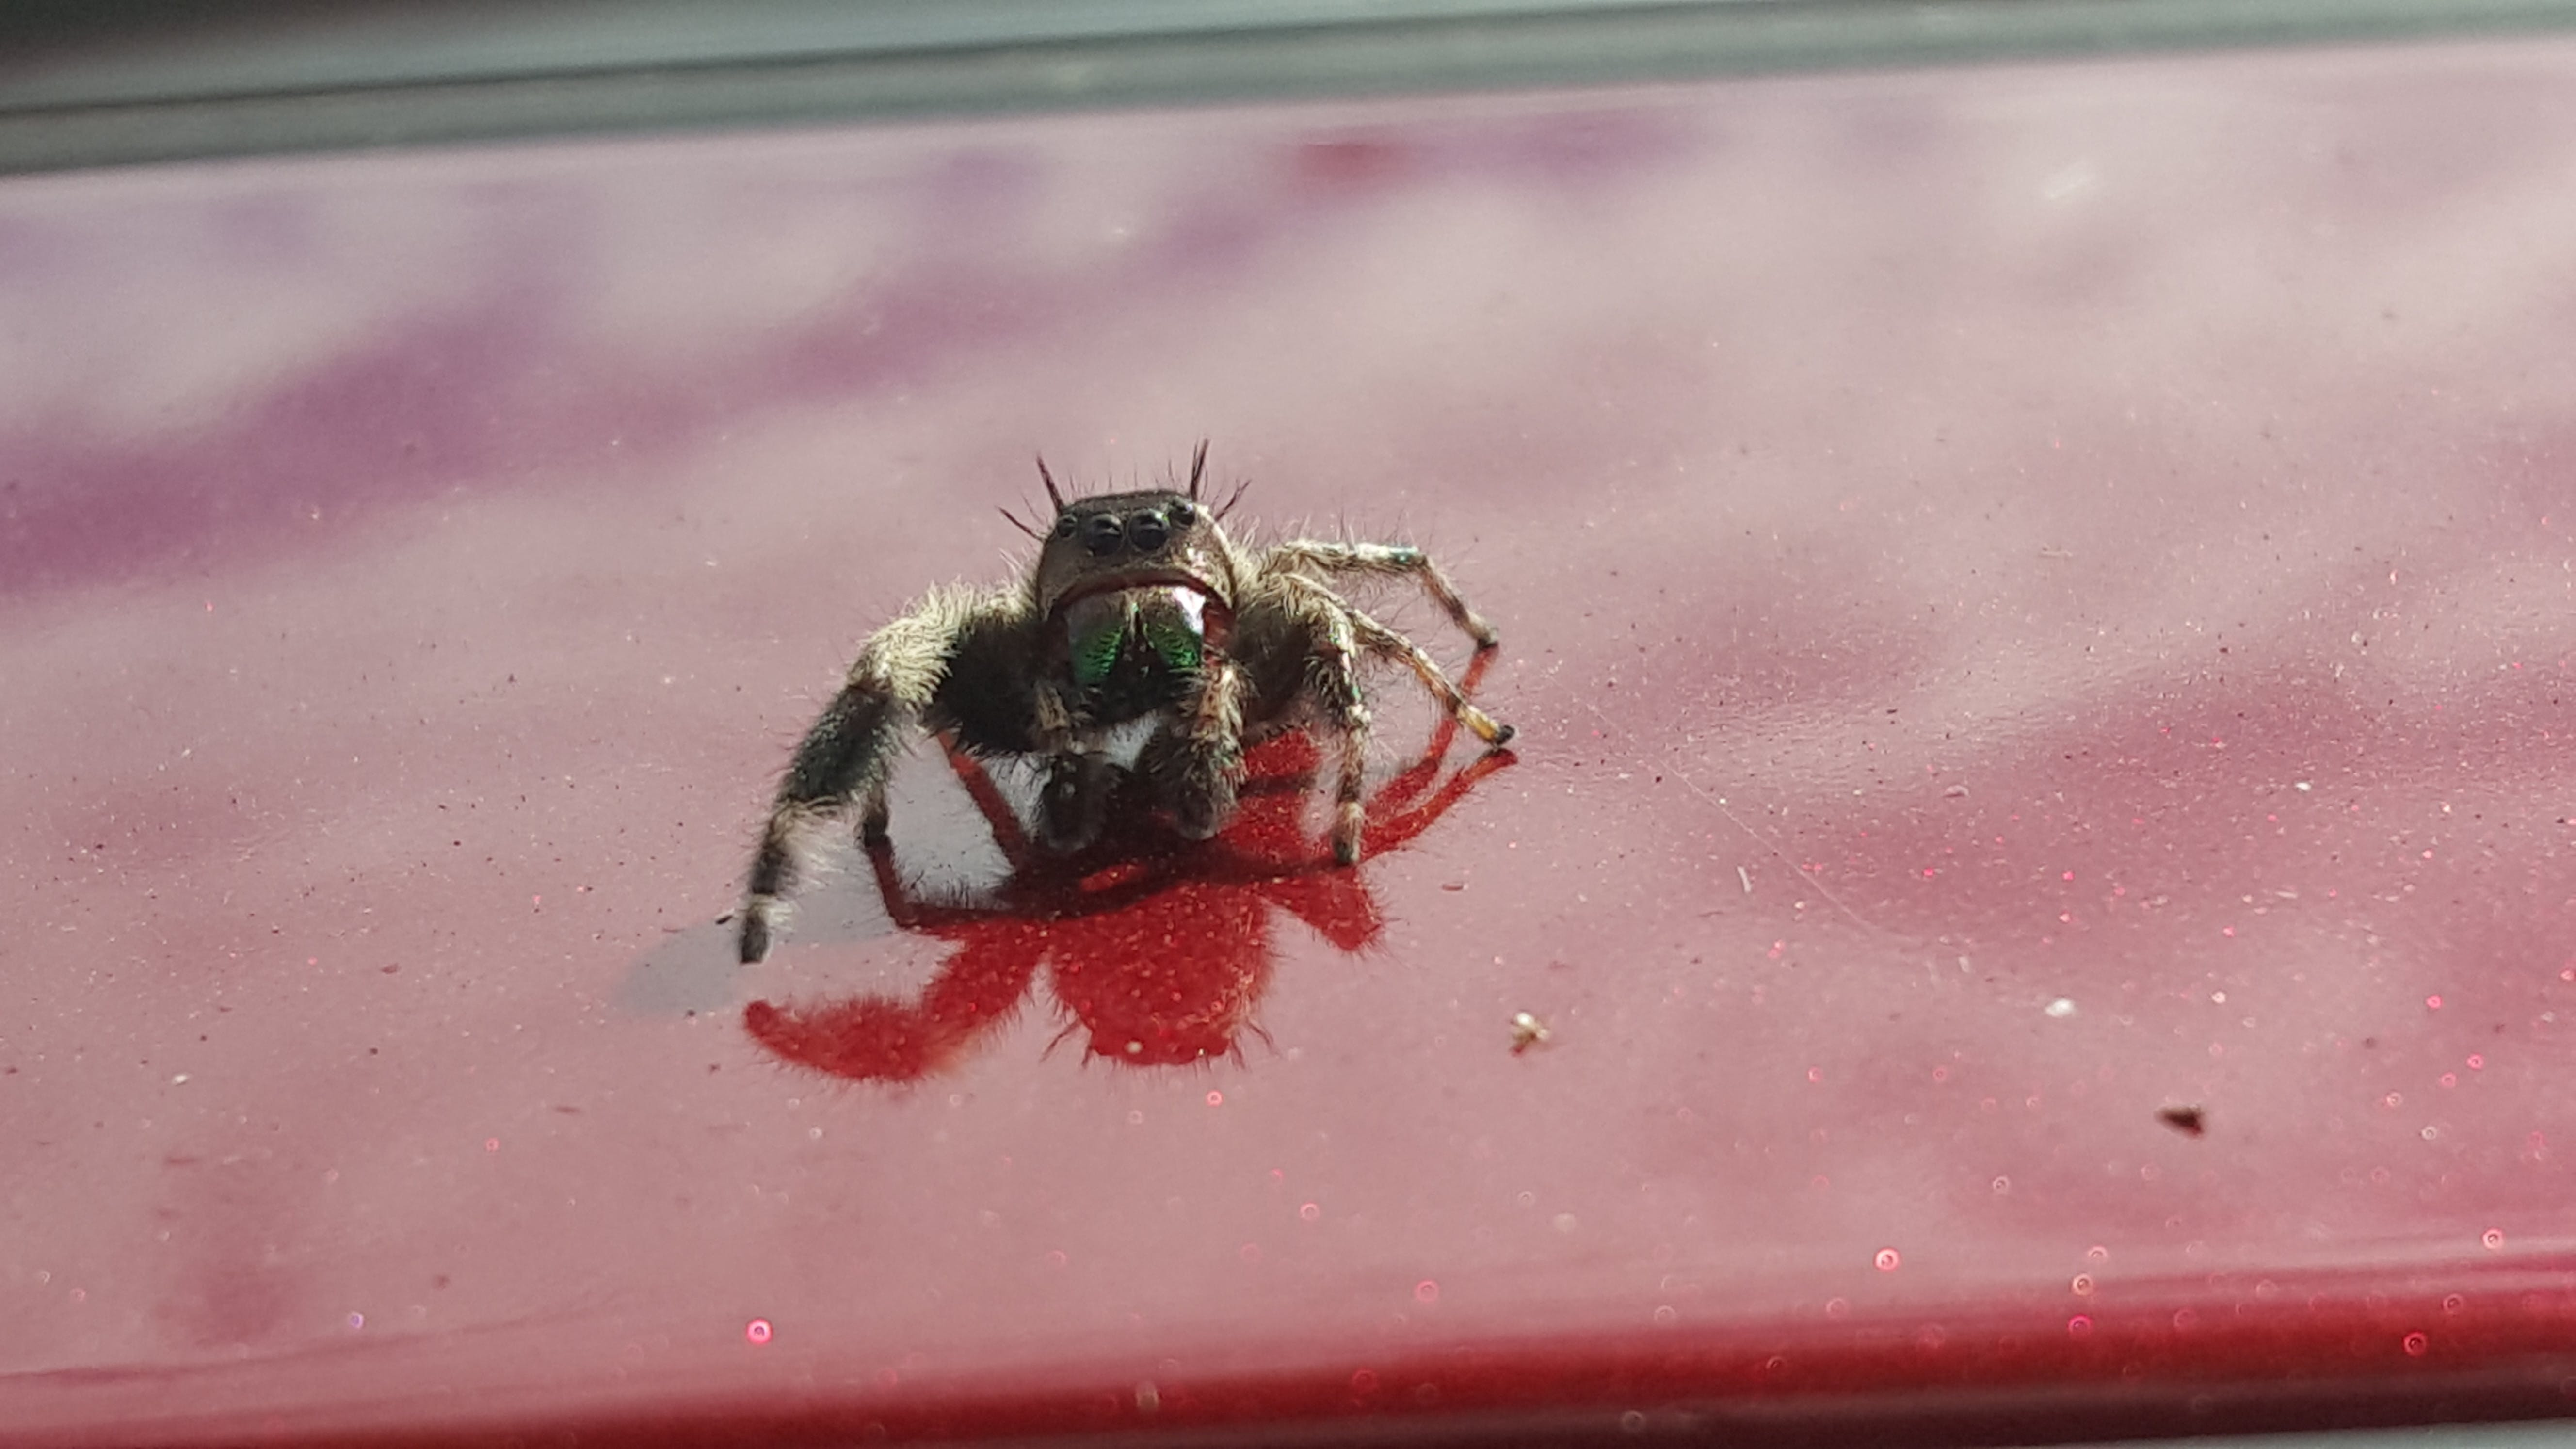 Free stock photo of jumping spider, spider